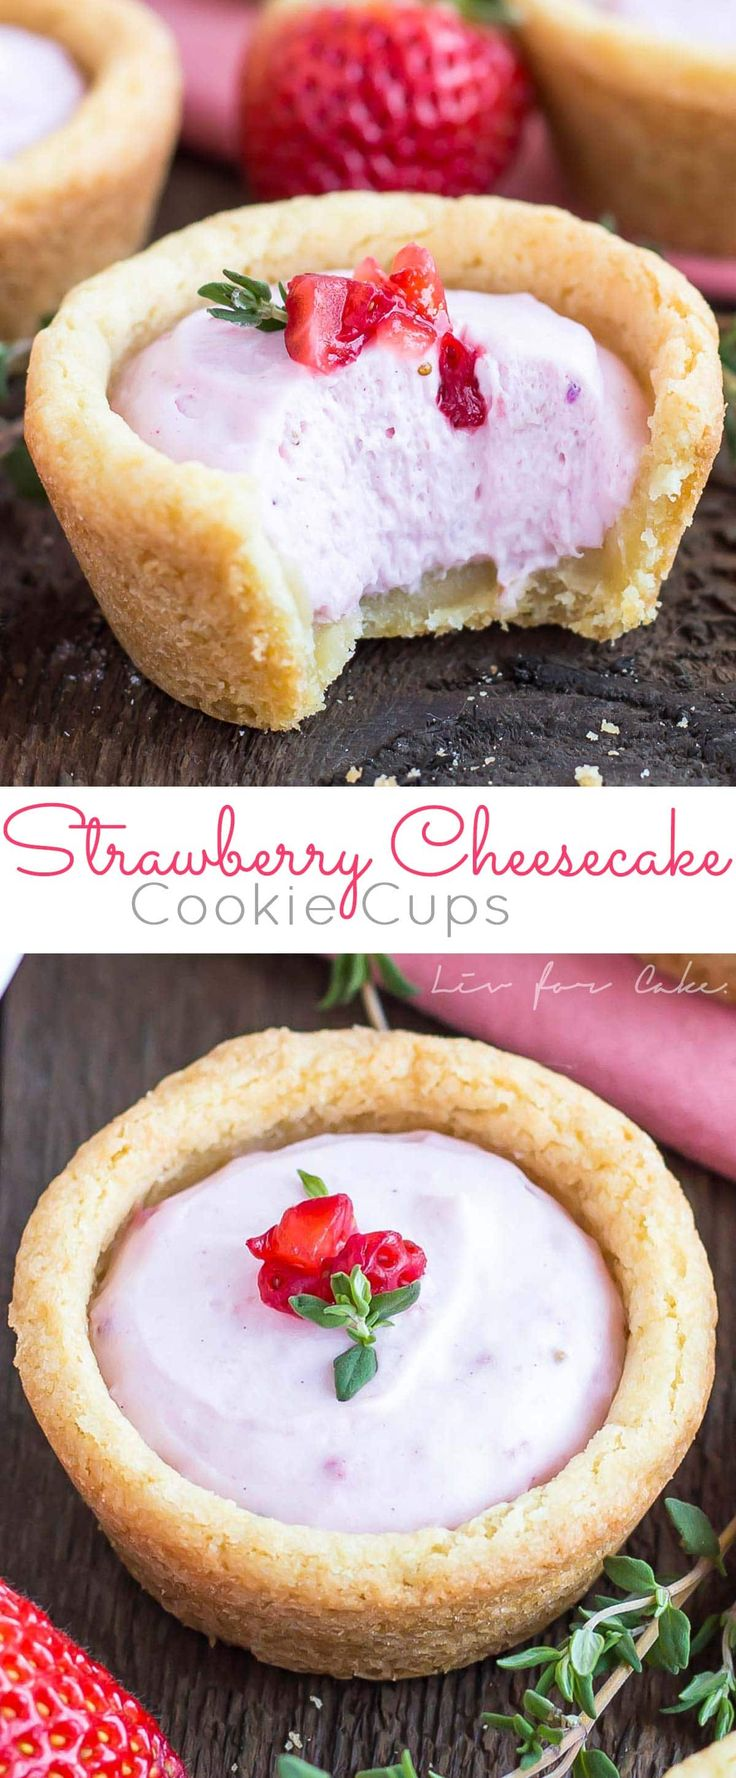 These Strawberry Cheesecake Cookie Cups are the perfect pairing of fruity cheesecake and chewy sugar cookies. | livforcake.com via @livforcake